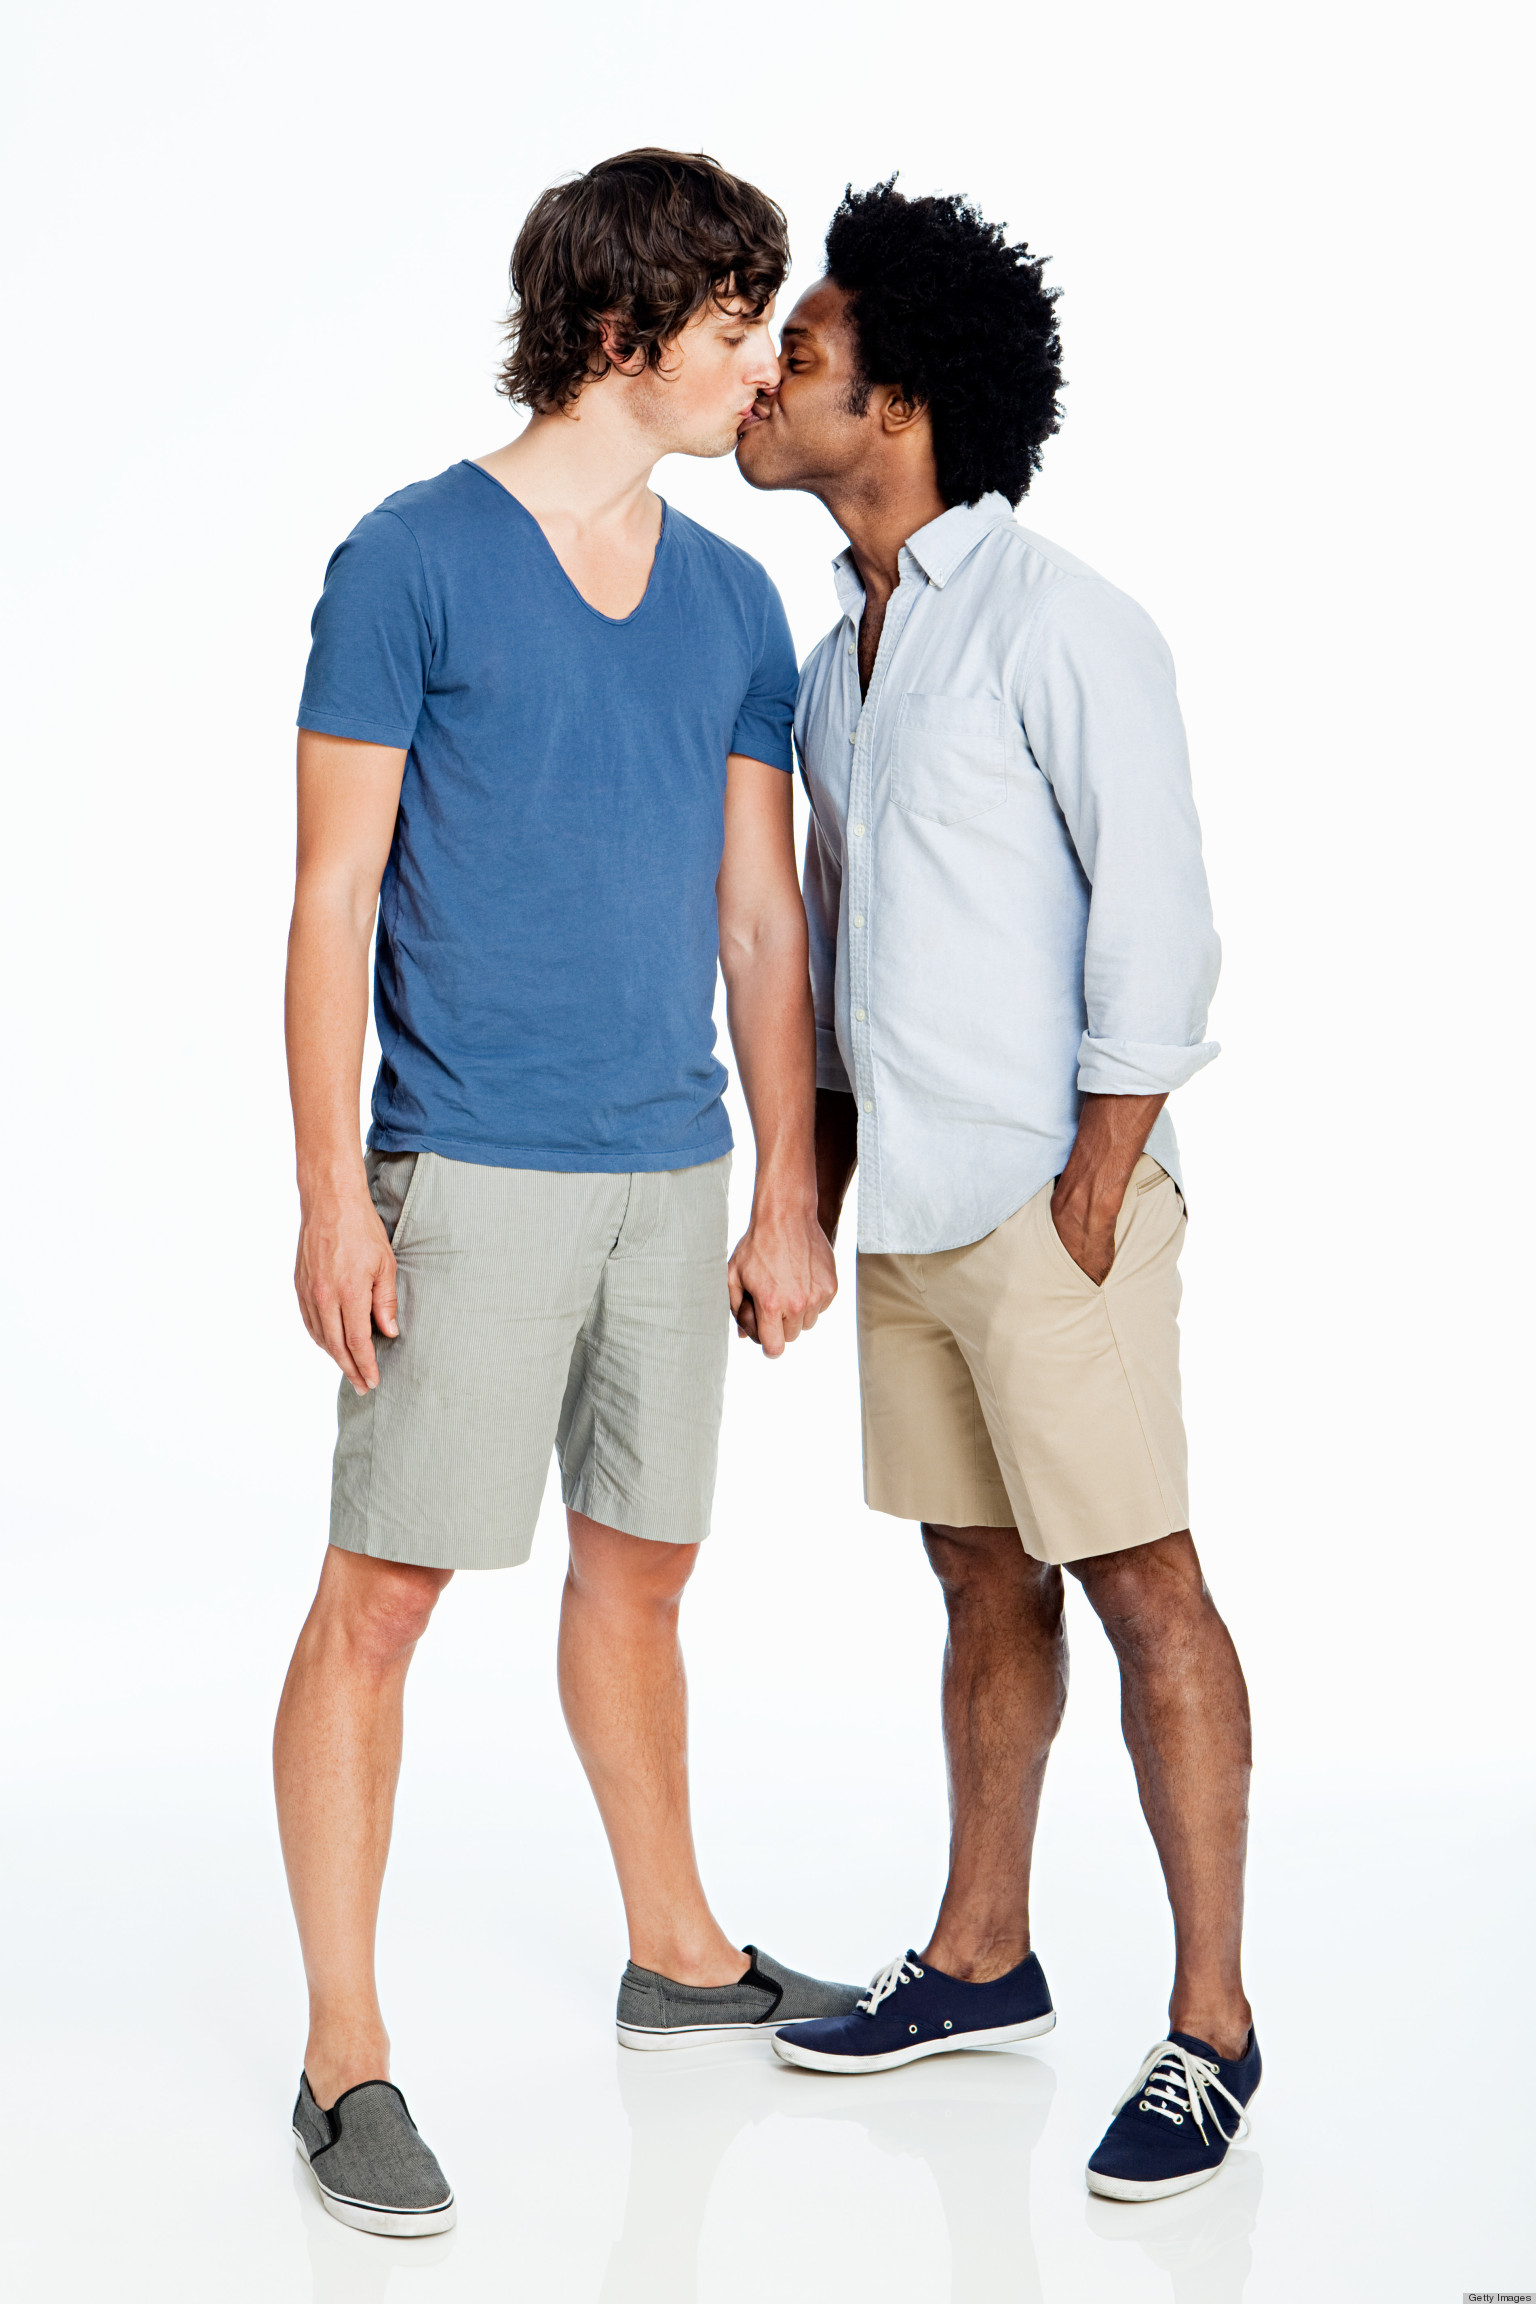 white haven gay singles If you're single and ready to mingle, these tips to meet gay men will get your  of  your dreams right in your own backyard that you haven't even considered yet.